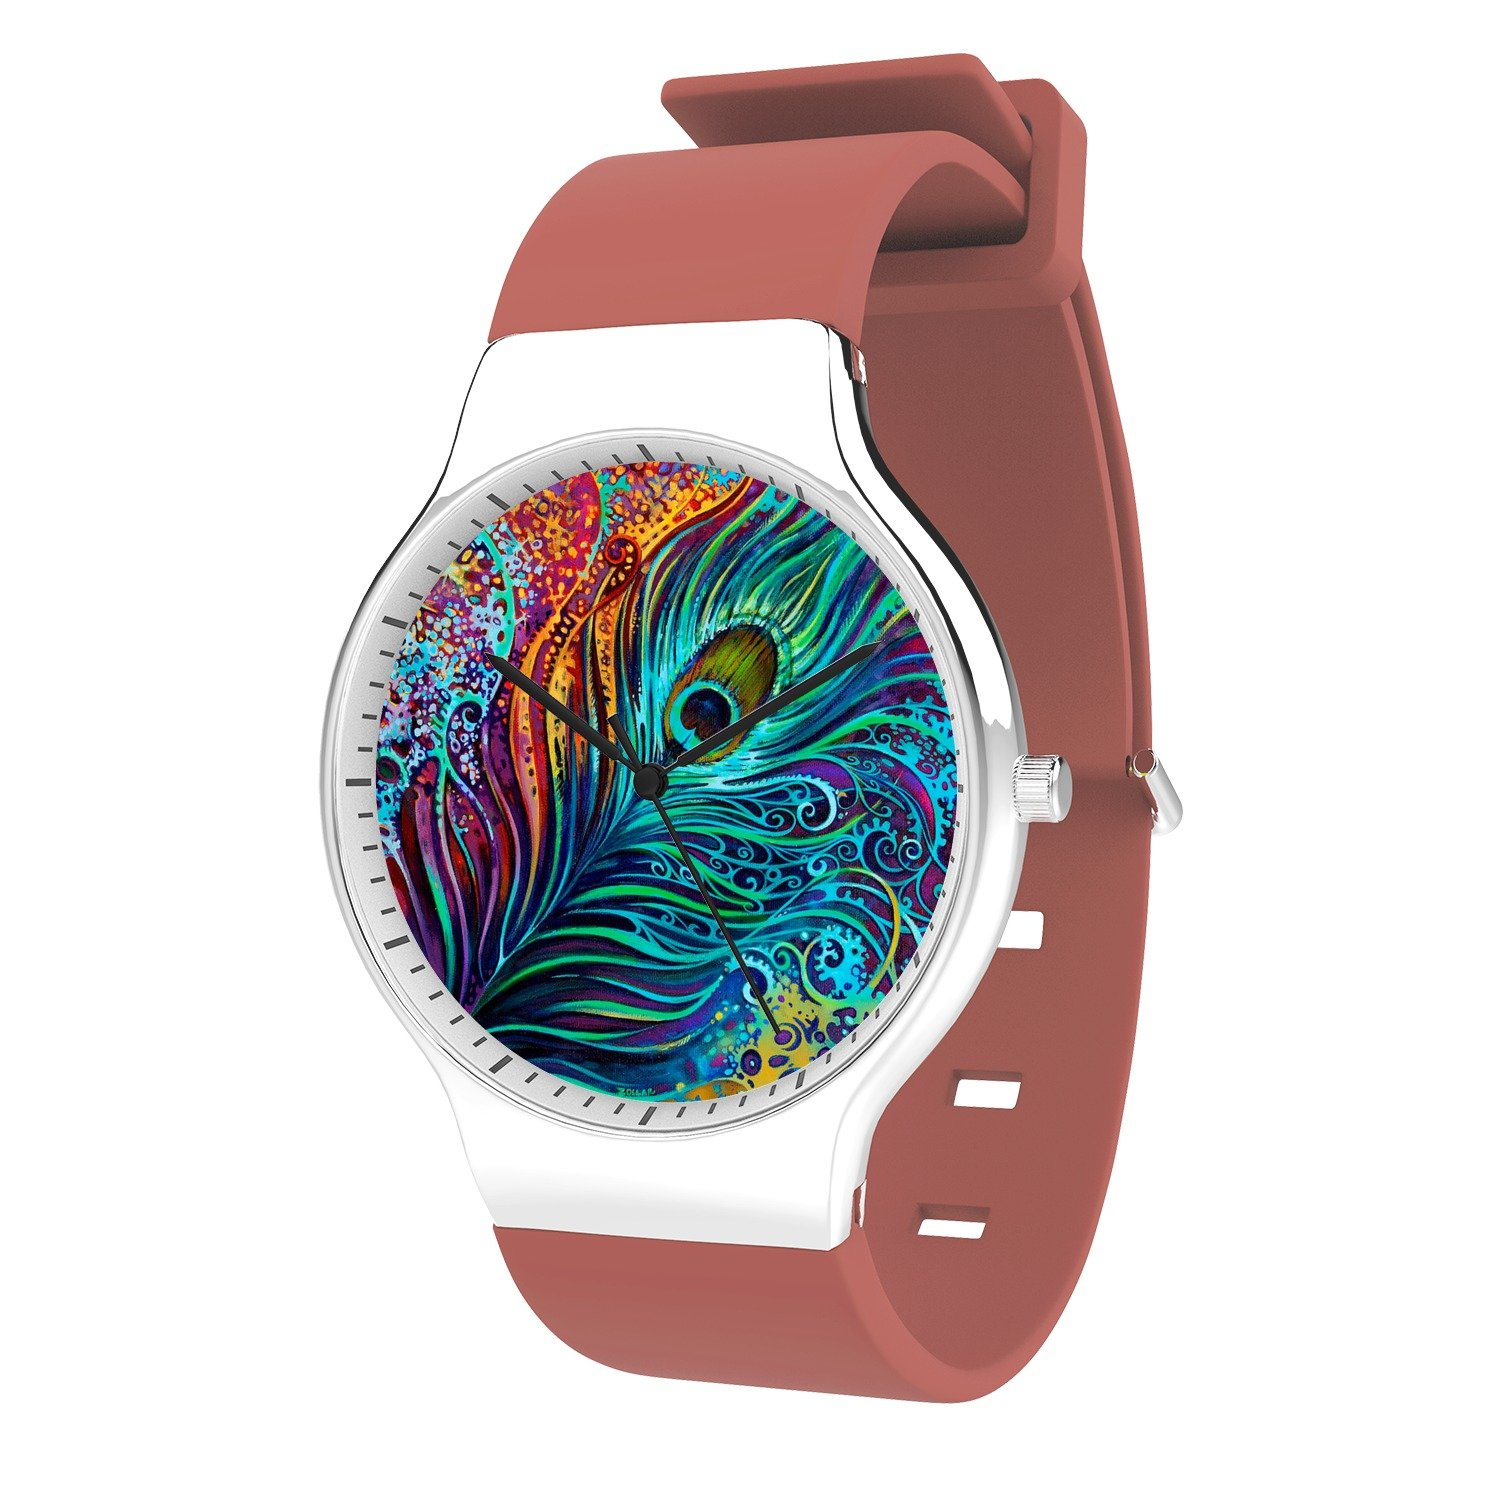 FELOOWSE Peacock Feather Watch Men's Quartz Watches, Minimalist Slim Japanese Quartz Youth Silicone Watches, Fashion PracticalWaterproof Boys Watch Customized Watches